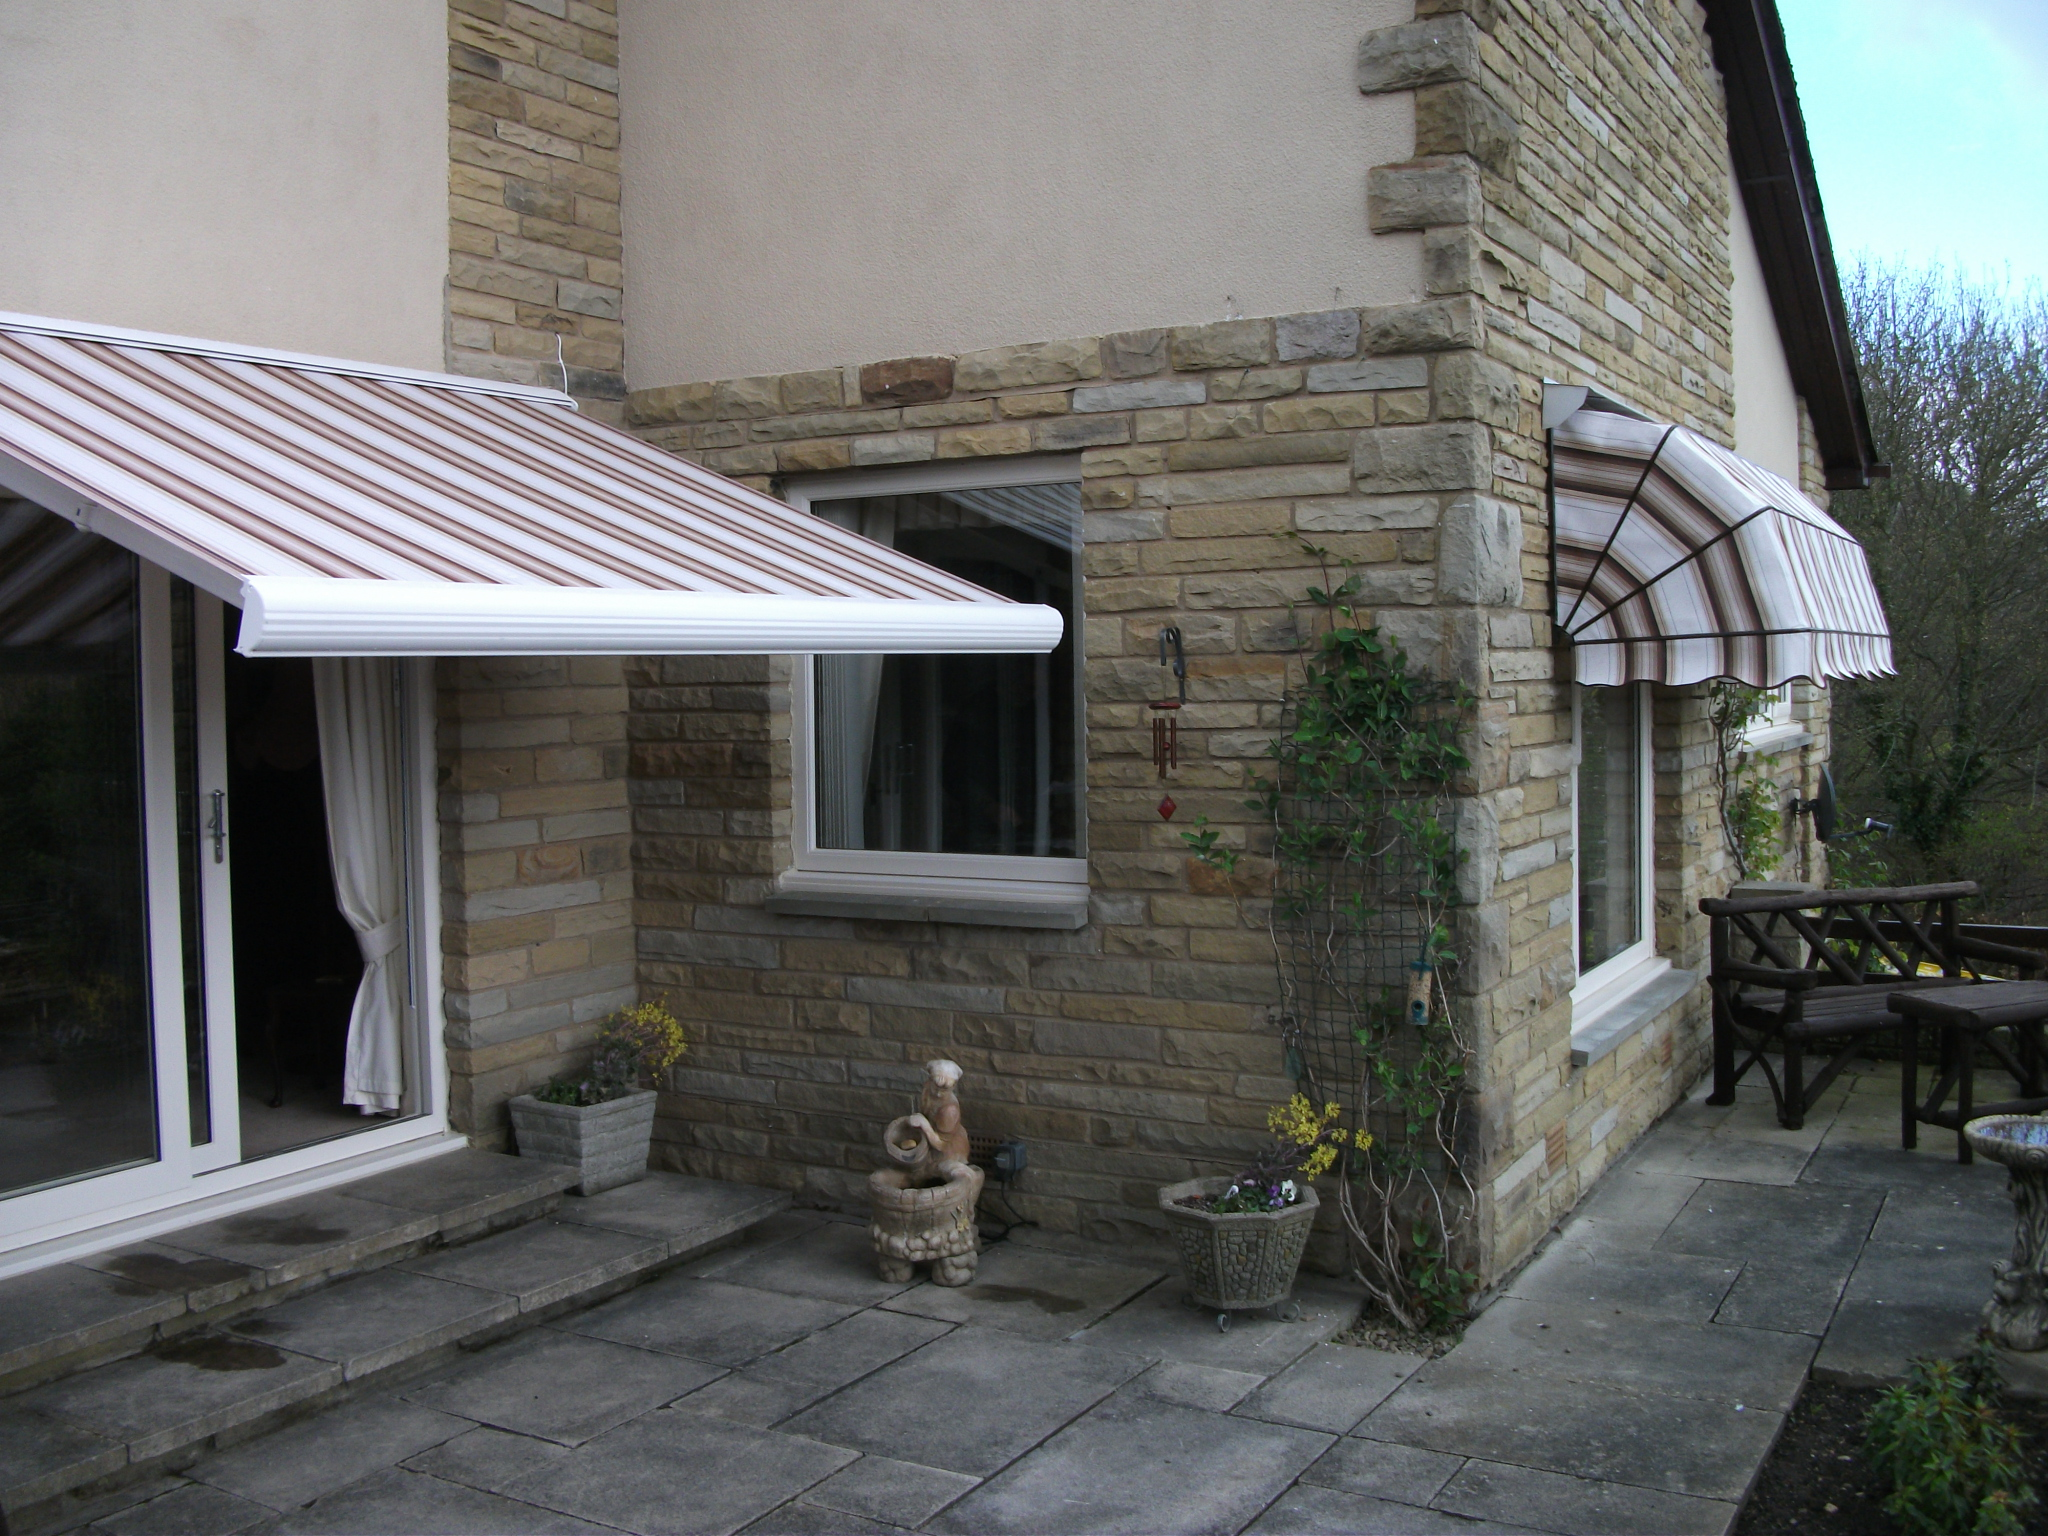 For Business & Awnings u0026 Canopies - Galea Sunblinds